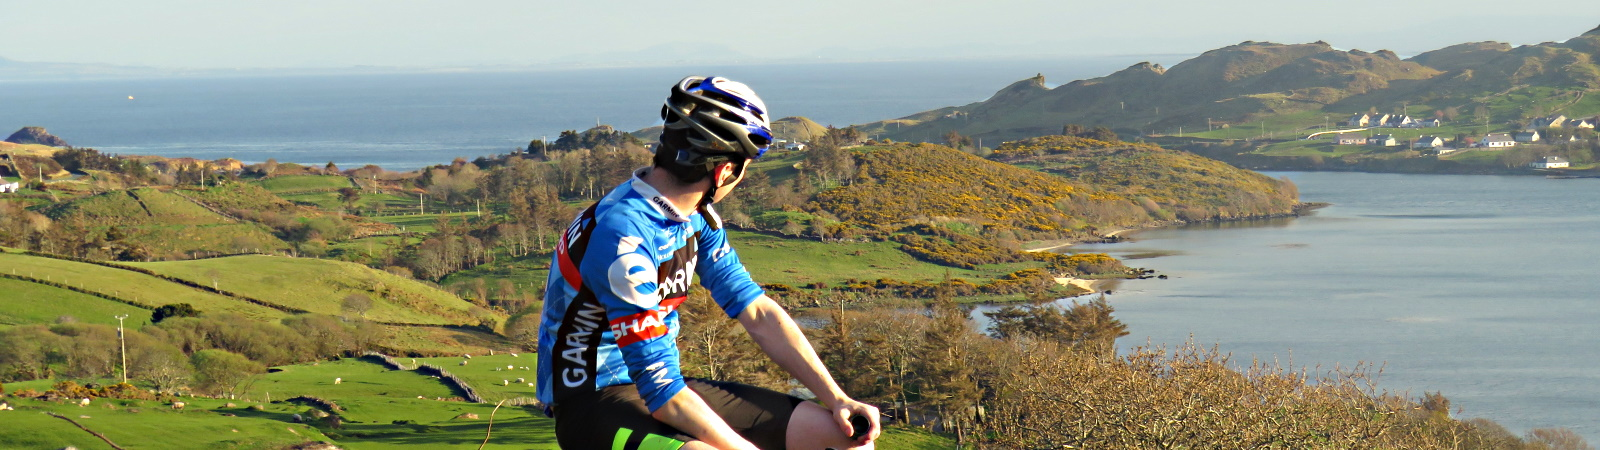 Donegal one day cycling tour